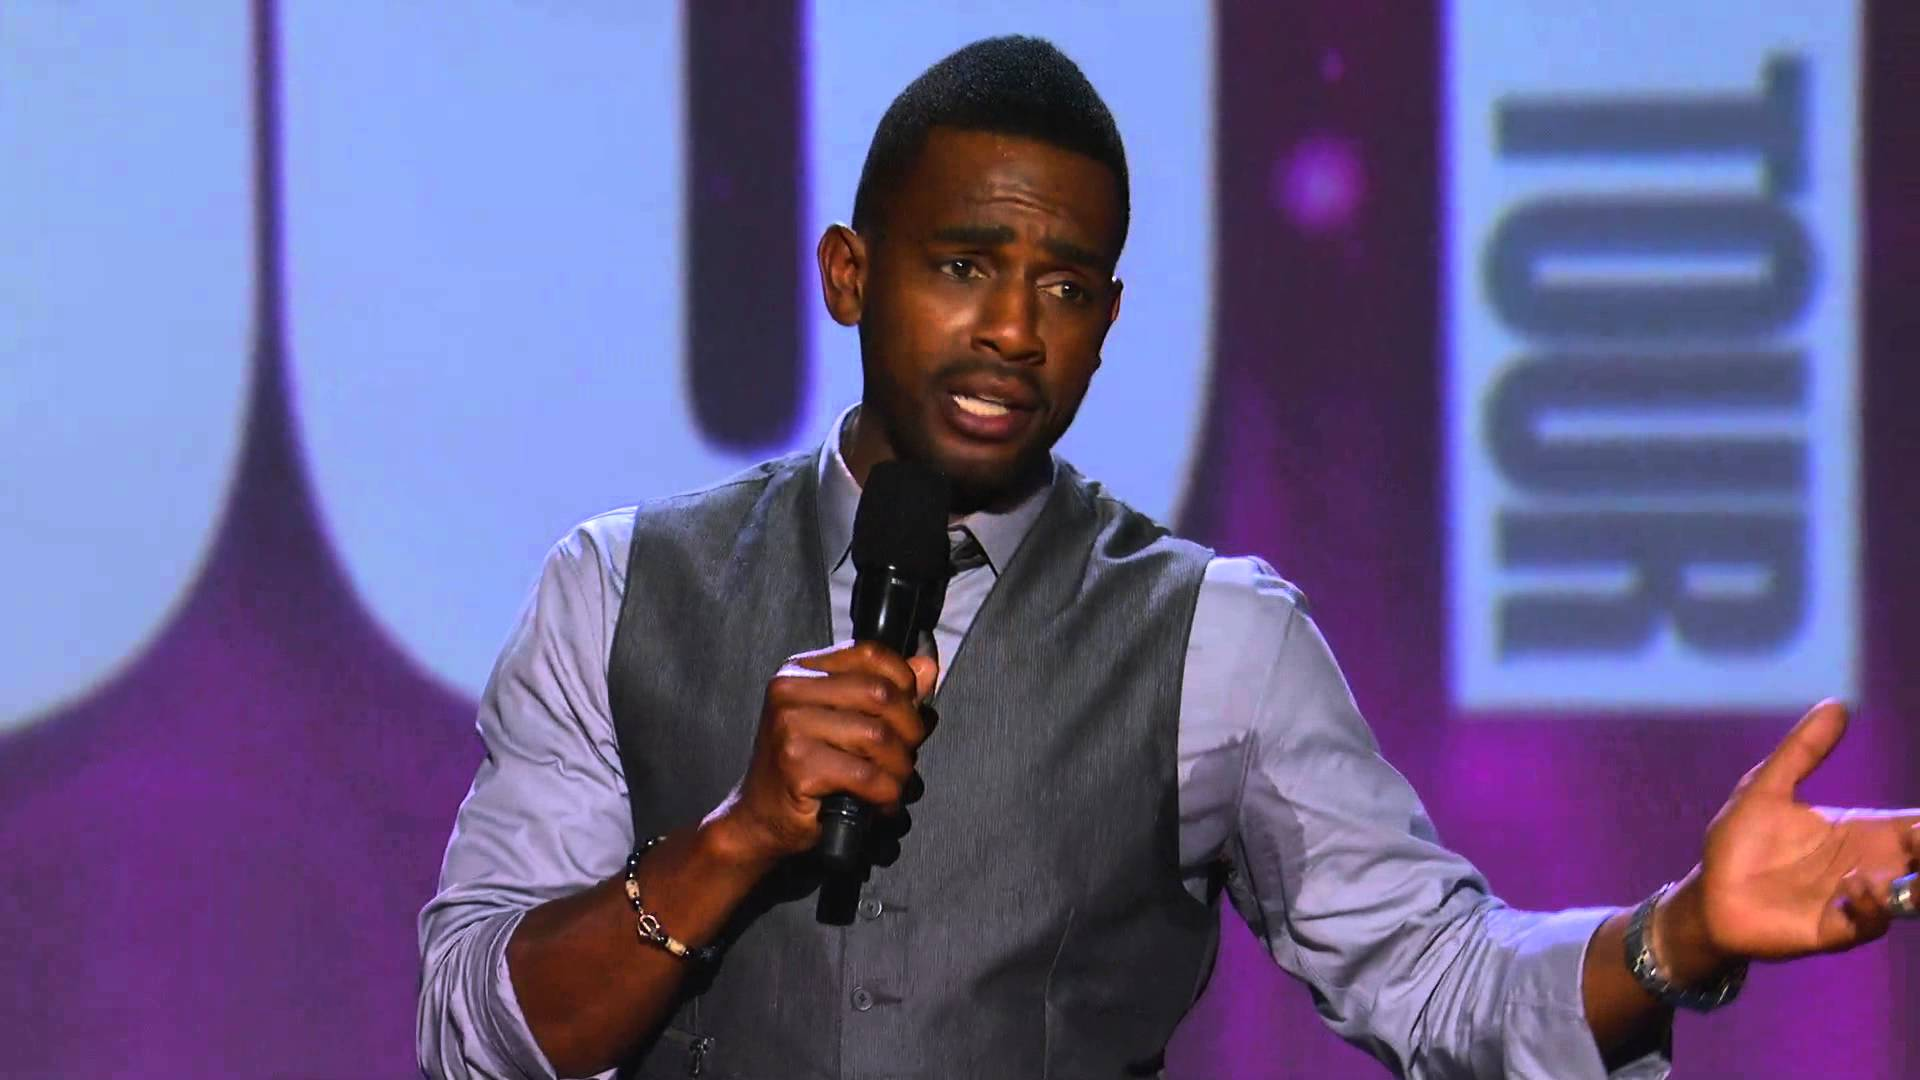 Bill Bellamy HQ wallpapers